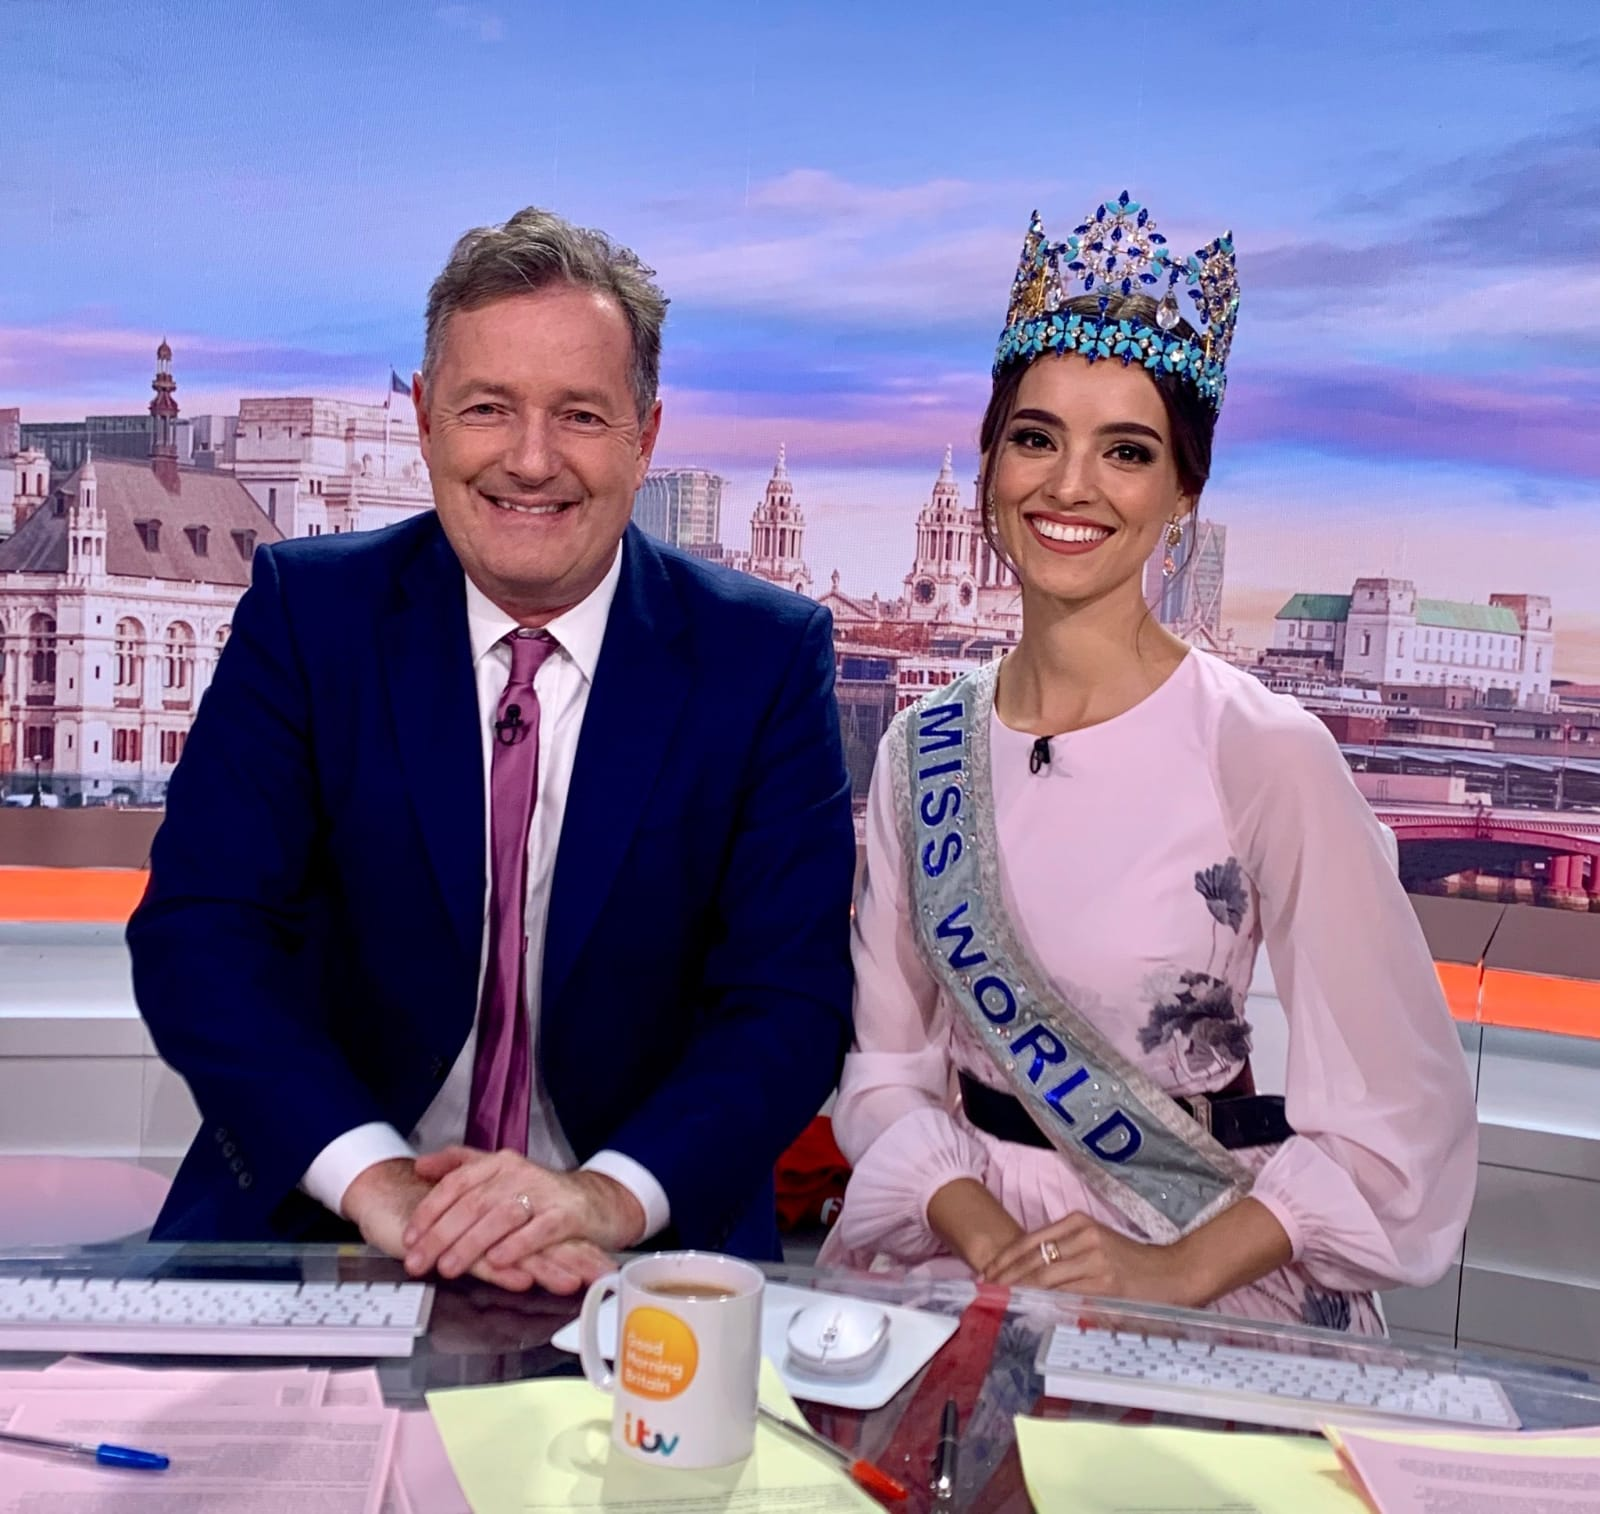 Piers Morgan and Miss World 2018, Vanessa Ponce de León on GMB set